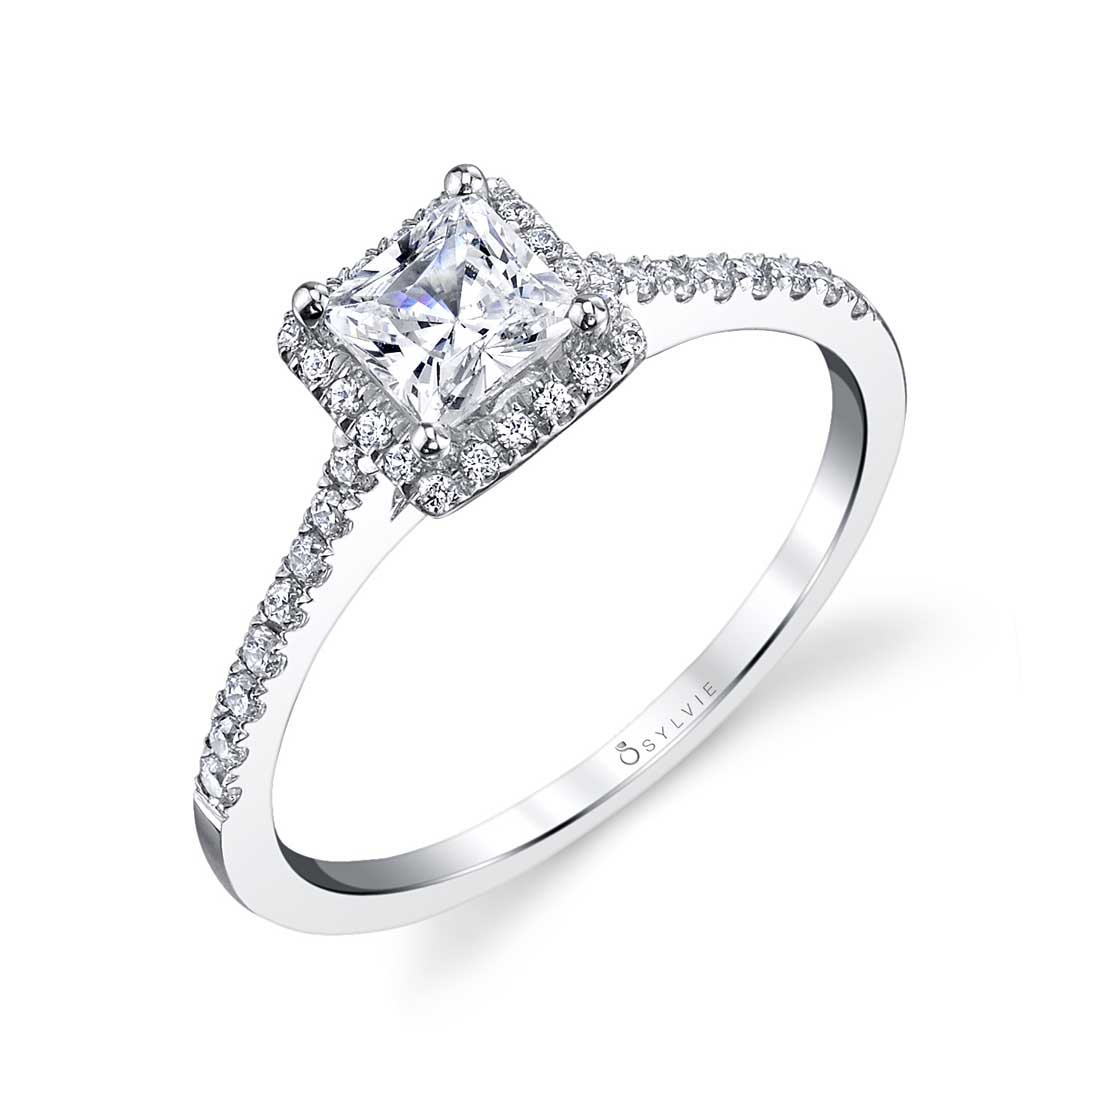 Oval Engagement Ring Profile